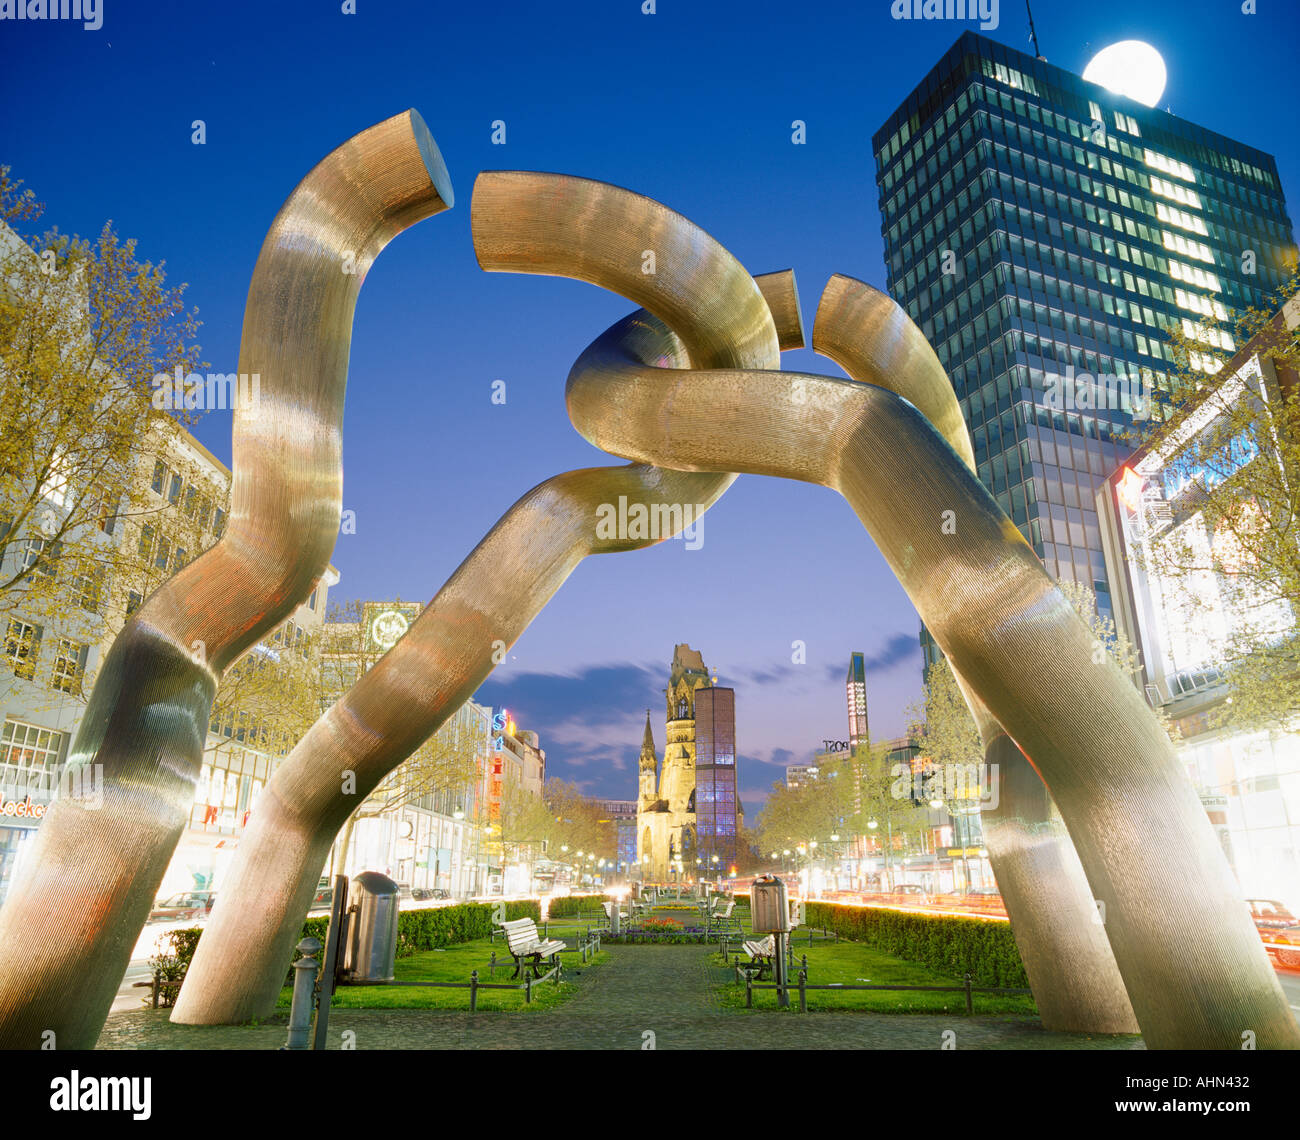 Kaiser wilhelm church and berlin sculpture Berlin - Stock Image